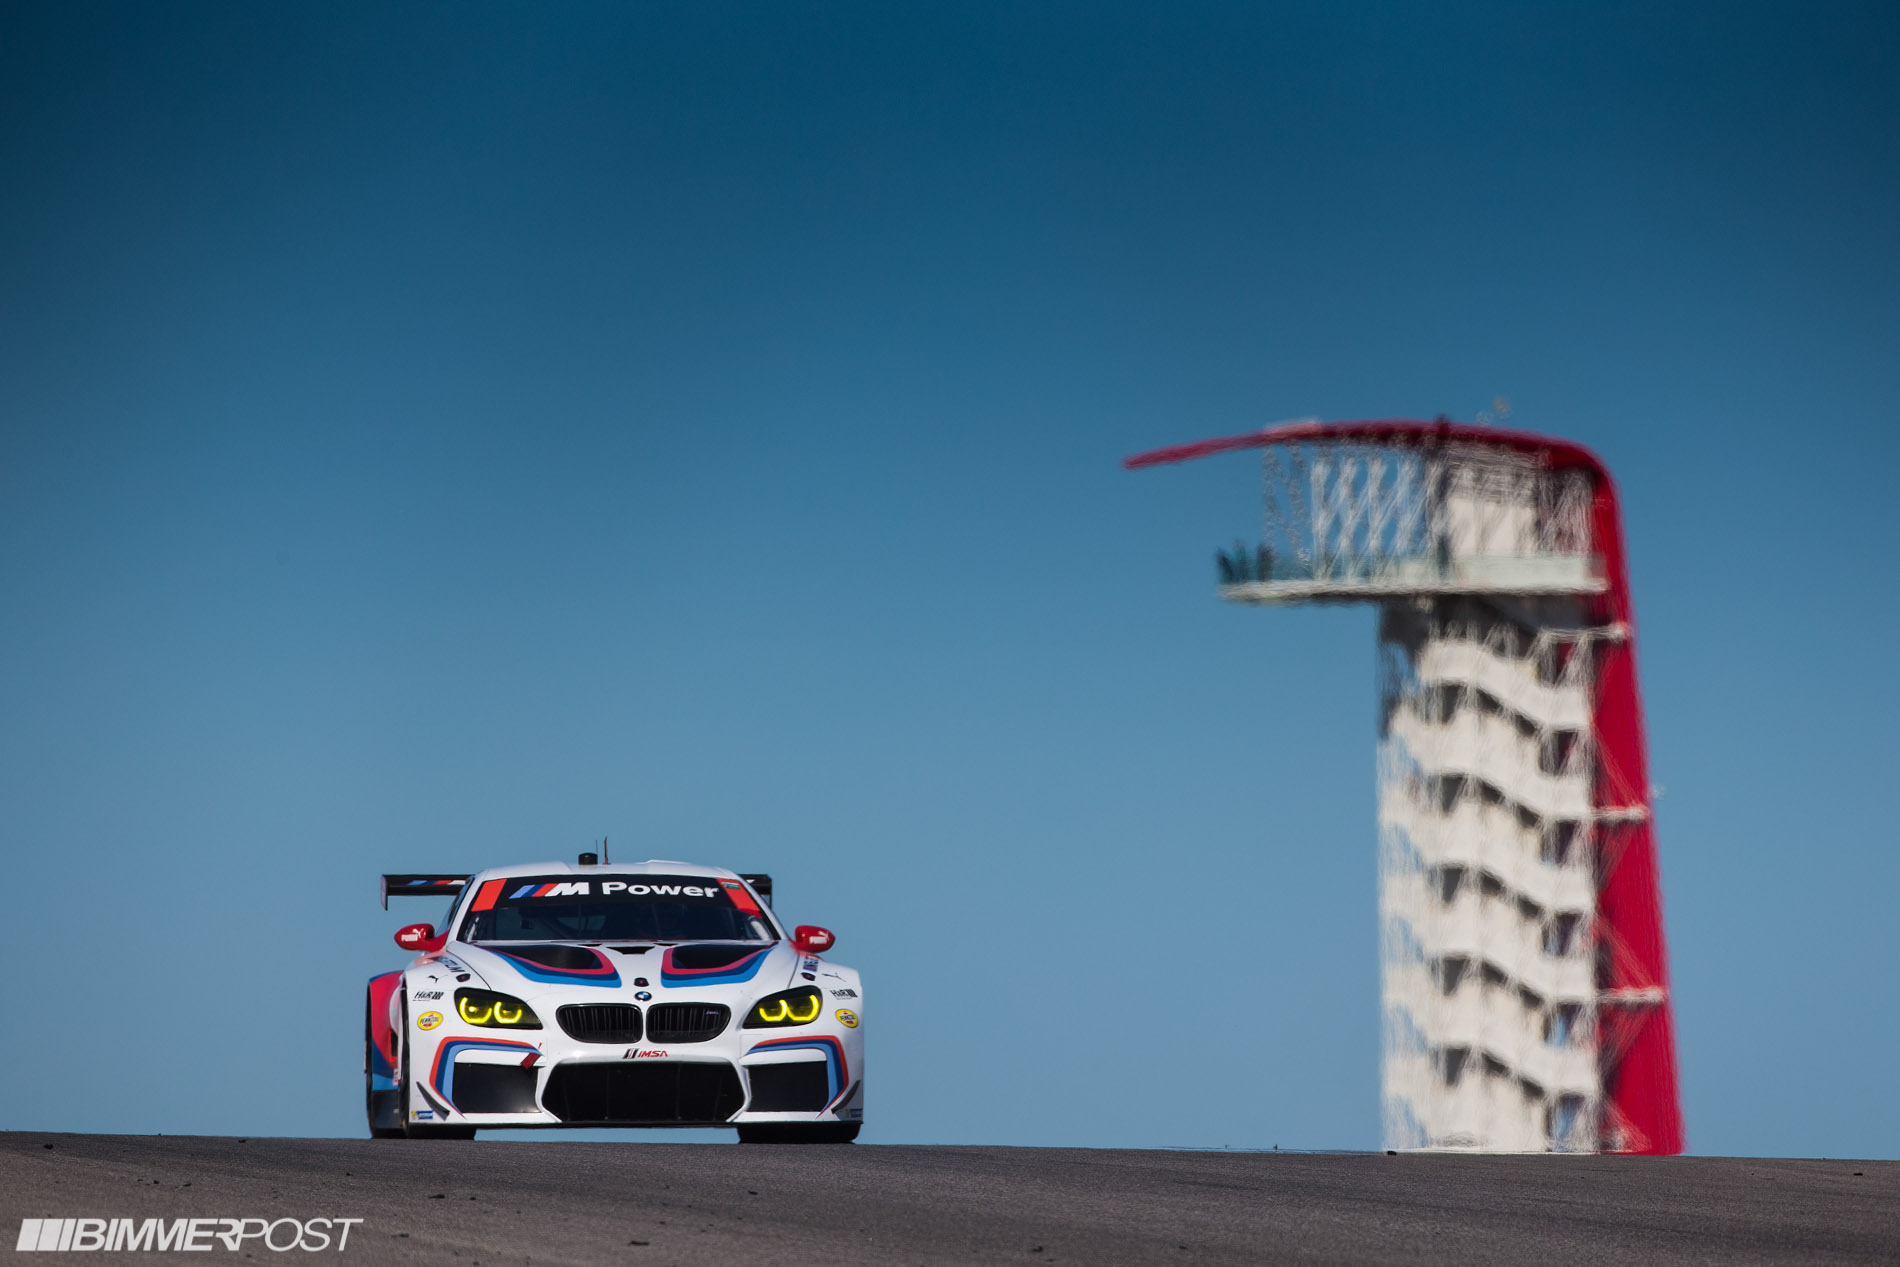 Double M6 Gtlm Podium Finish For Bmw Team Rll At Cota